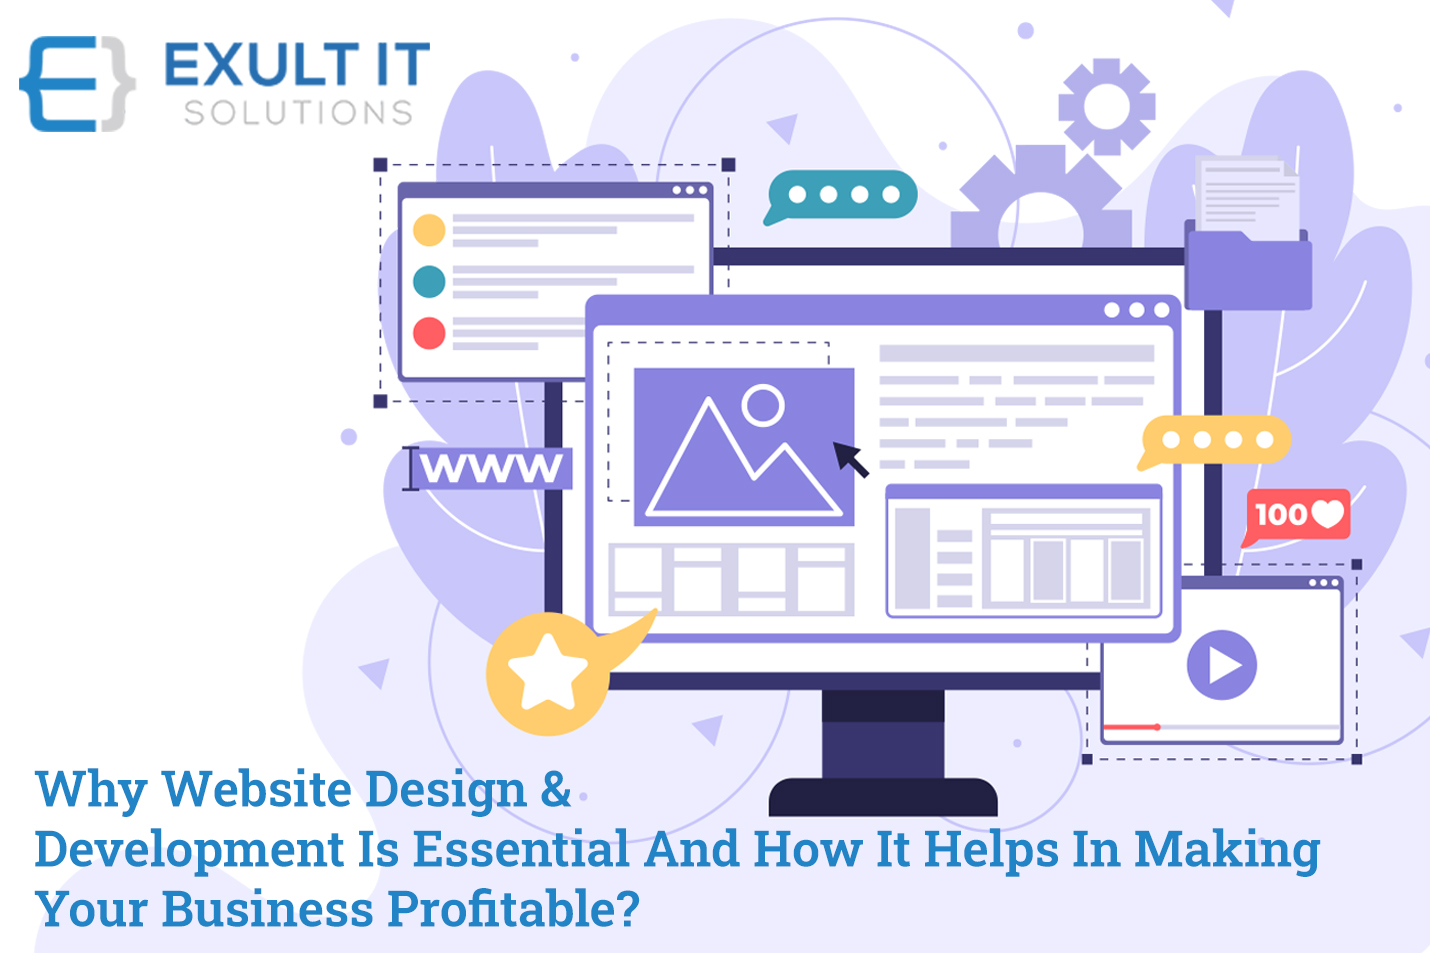 Why Website Design & Development Is Essential And How It Helps In Making Your Business Profitable-Exult IT Solution